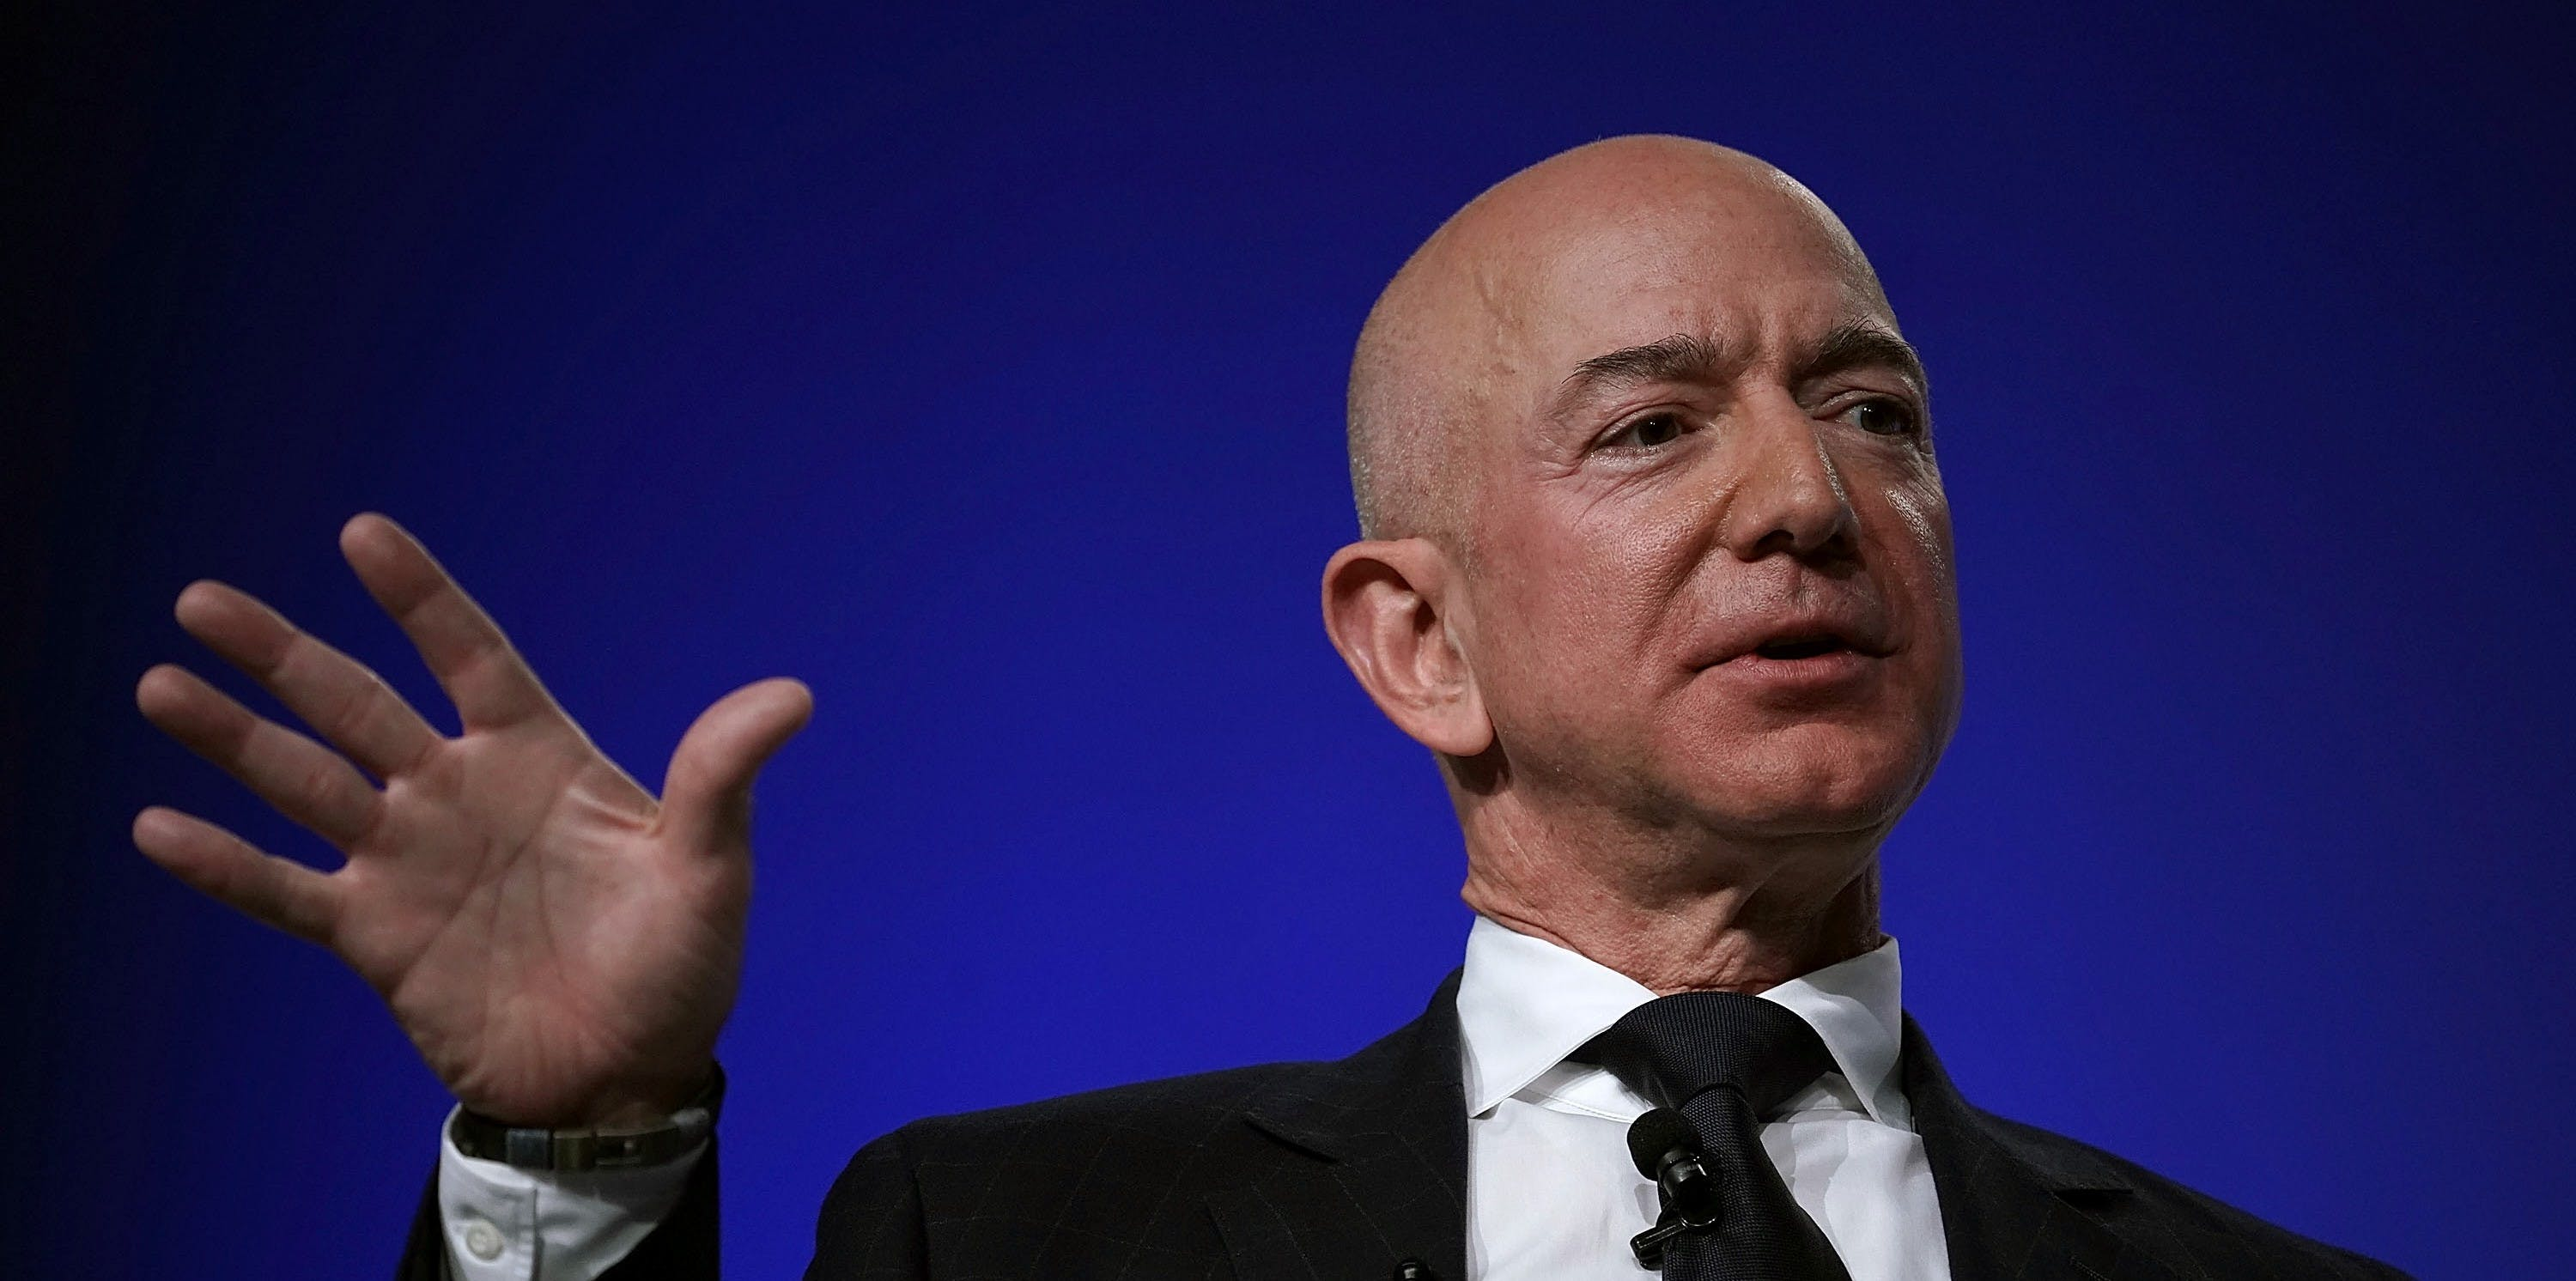 Jeff Bezos Protests the Invasion of his Privacy as Amazon Builds a Sprawling Surveillance State For Everyone Else